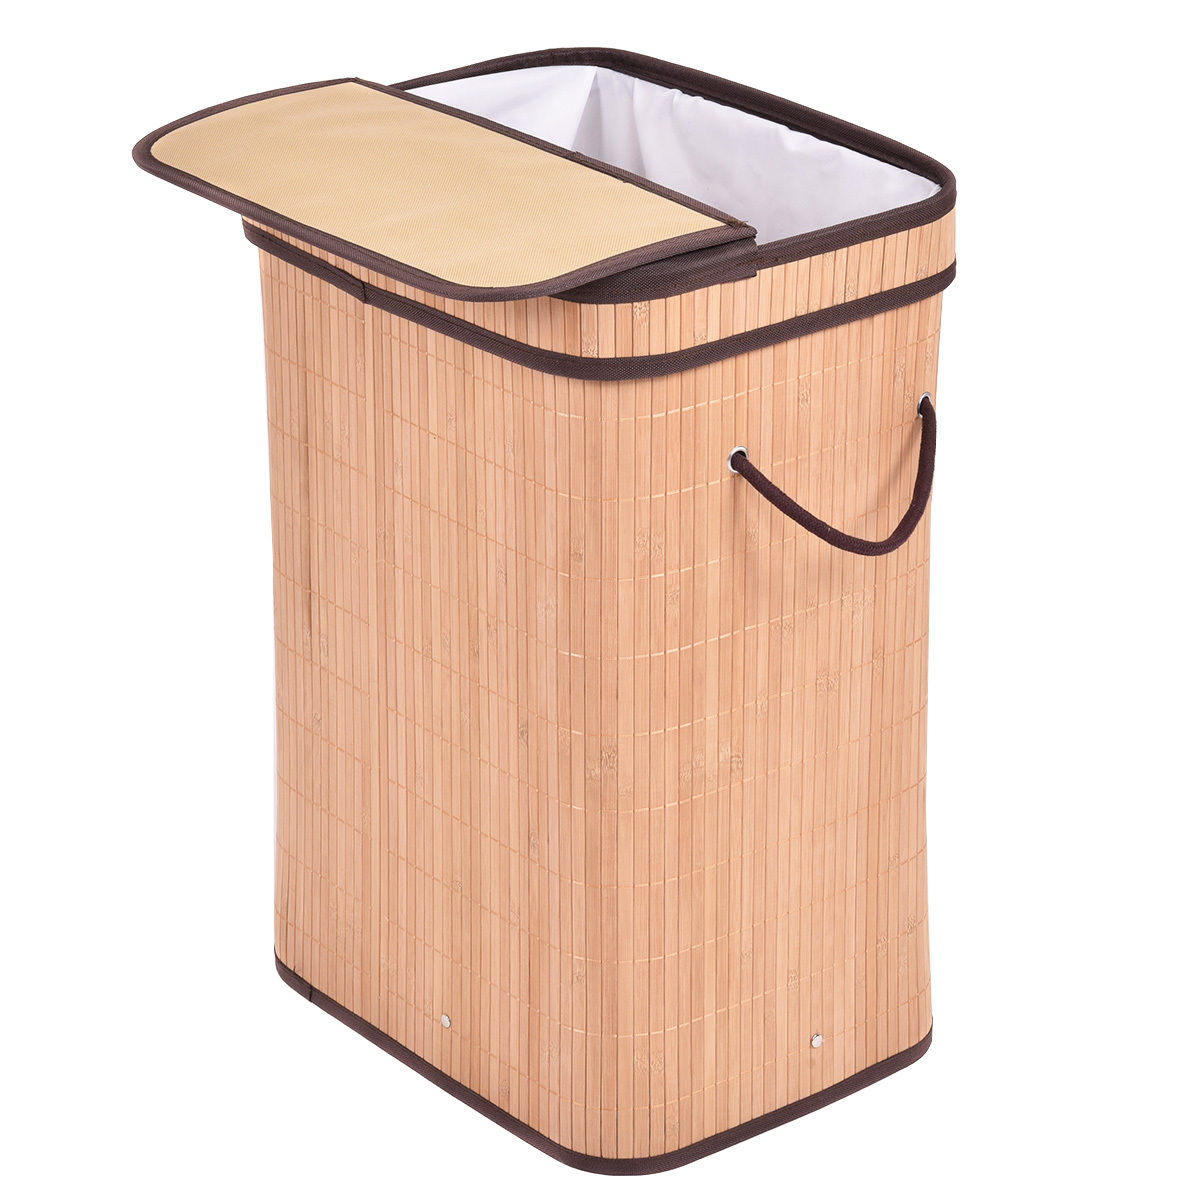 Rectangular Bamboo Laundry Hamper Basket with Lid